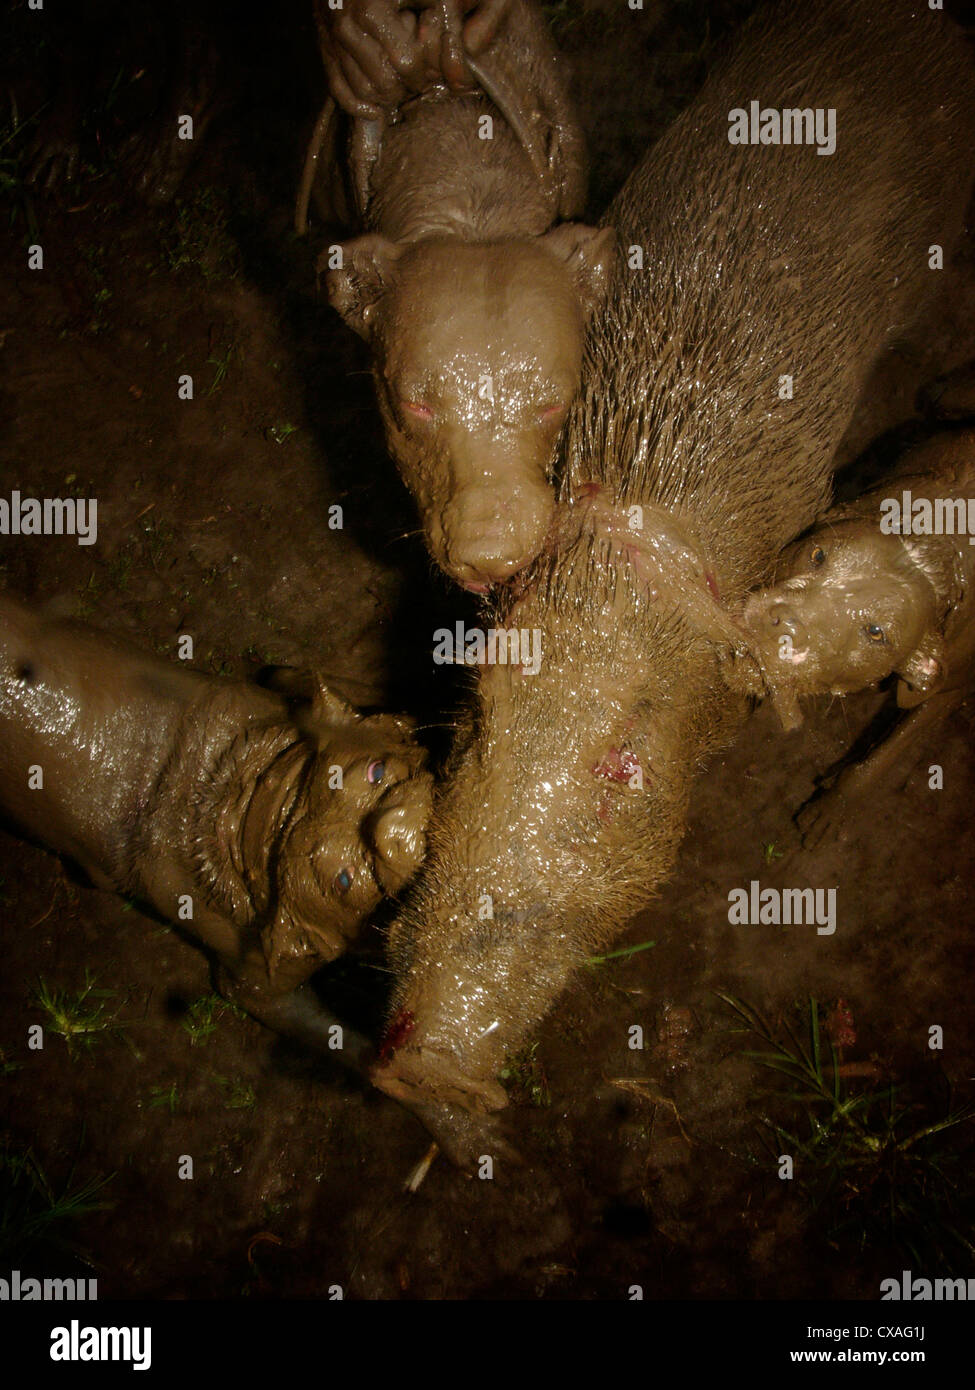 Three fighting dogs maul a wild boar during a legal pig-baiting contest in West Java, Indonesia. - Stock Image